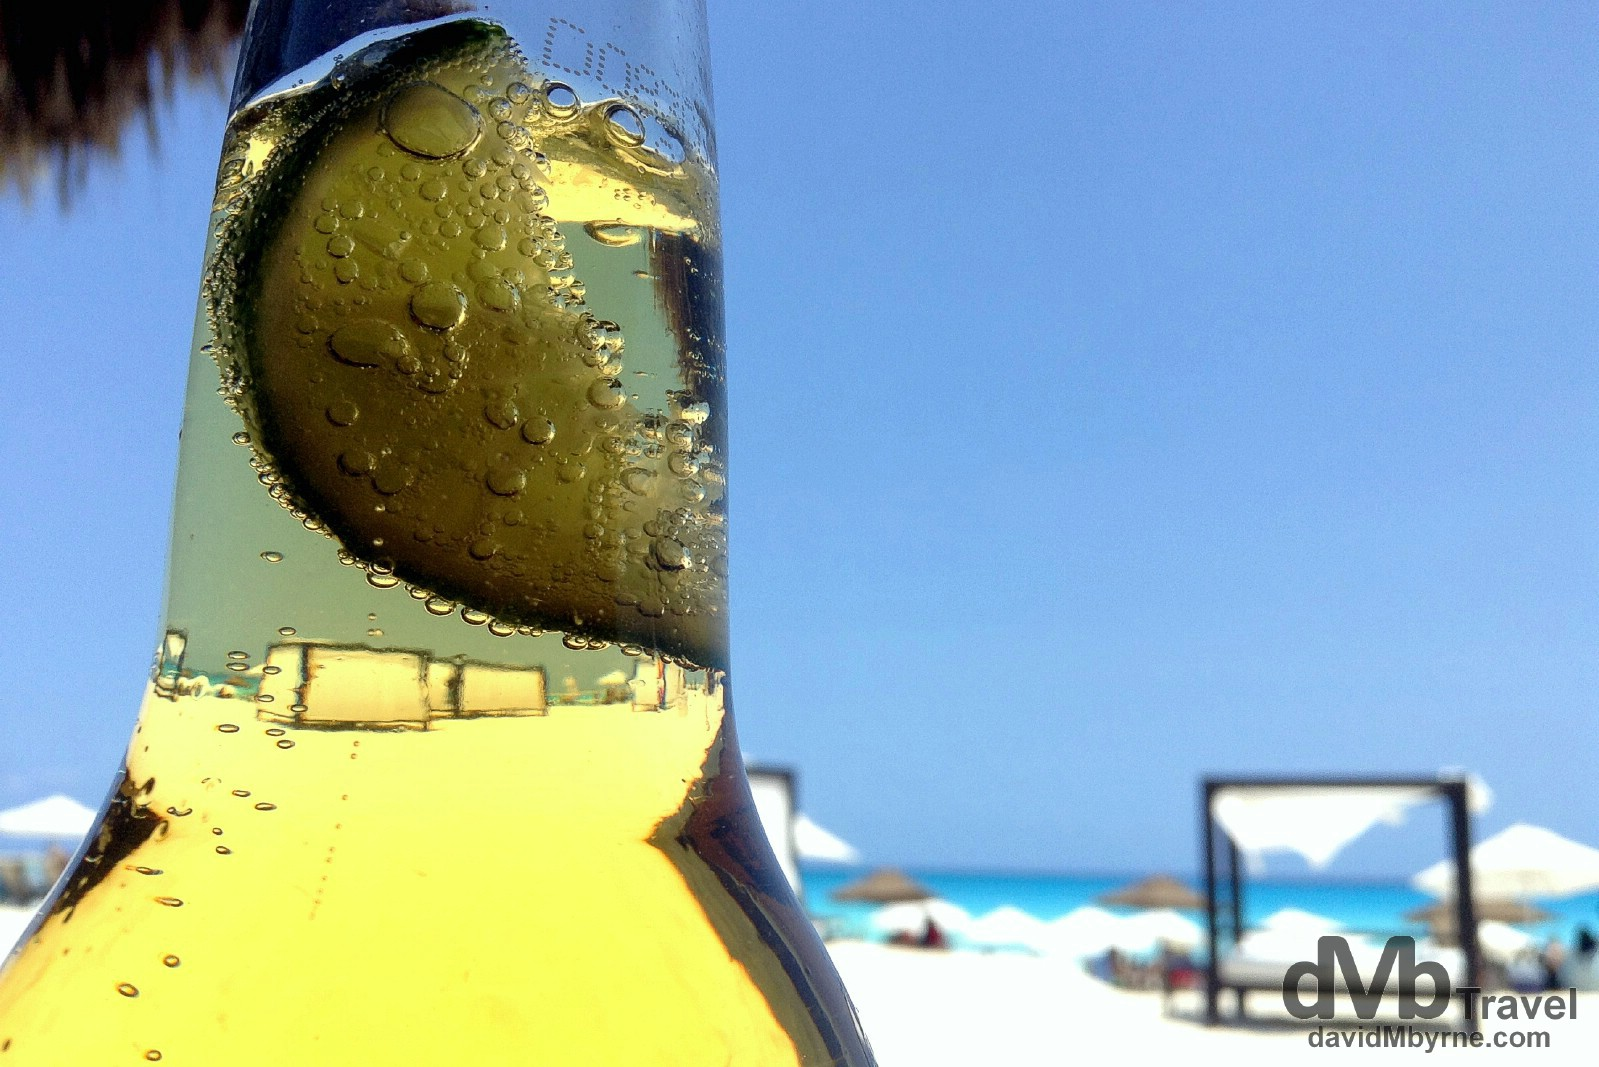 Corona bubbles & lime on Gaviota Azul, Cancun, Yucatan, Mexico. May 5th 2013. (iPod)